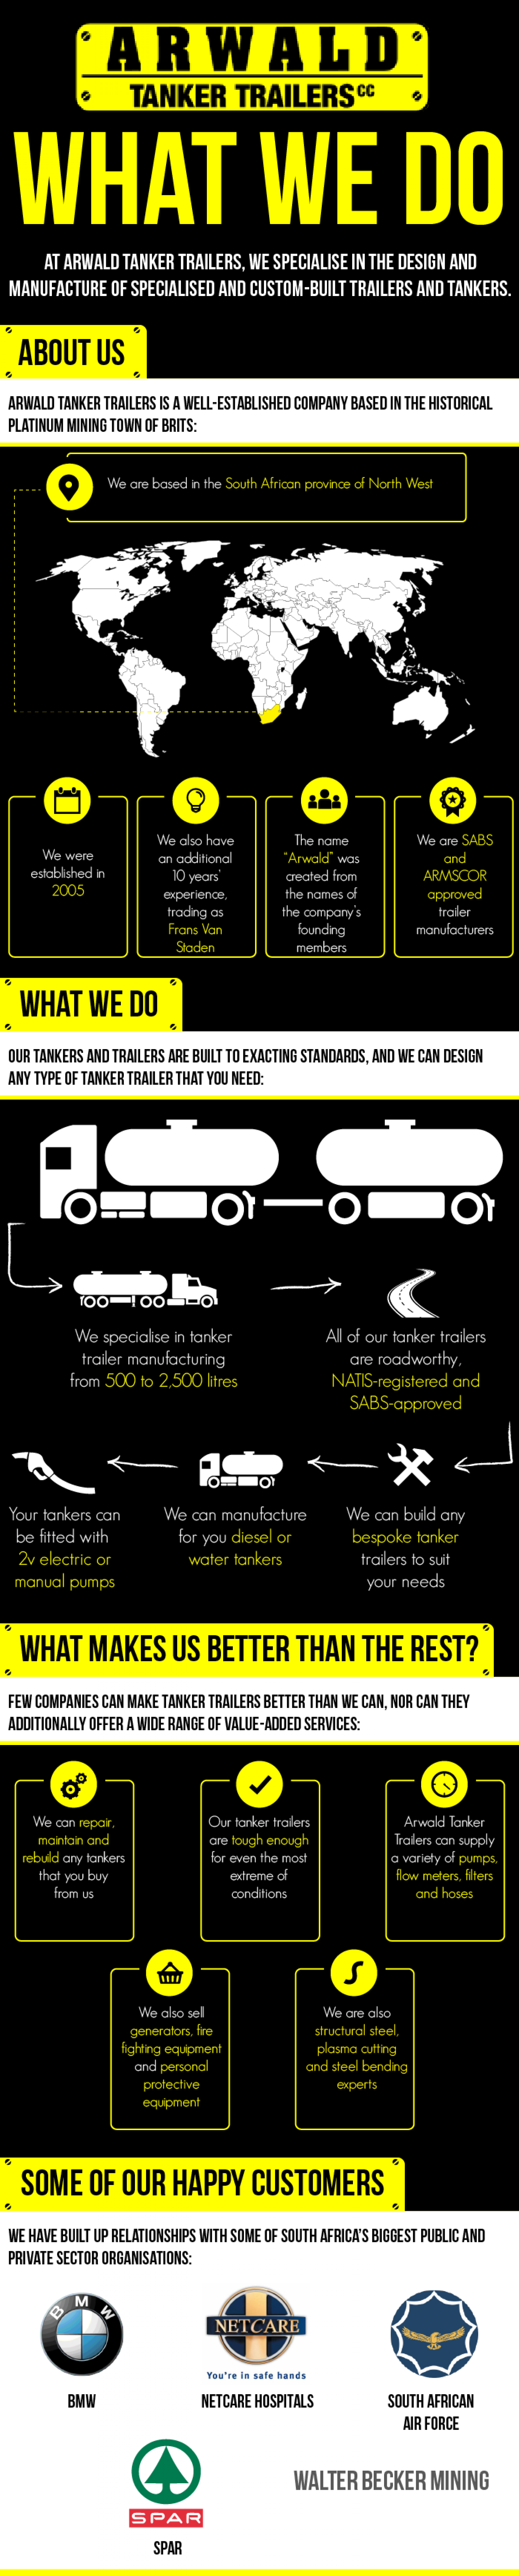 Arwald Tanker Trailers: Company Profile Infographic